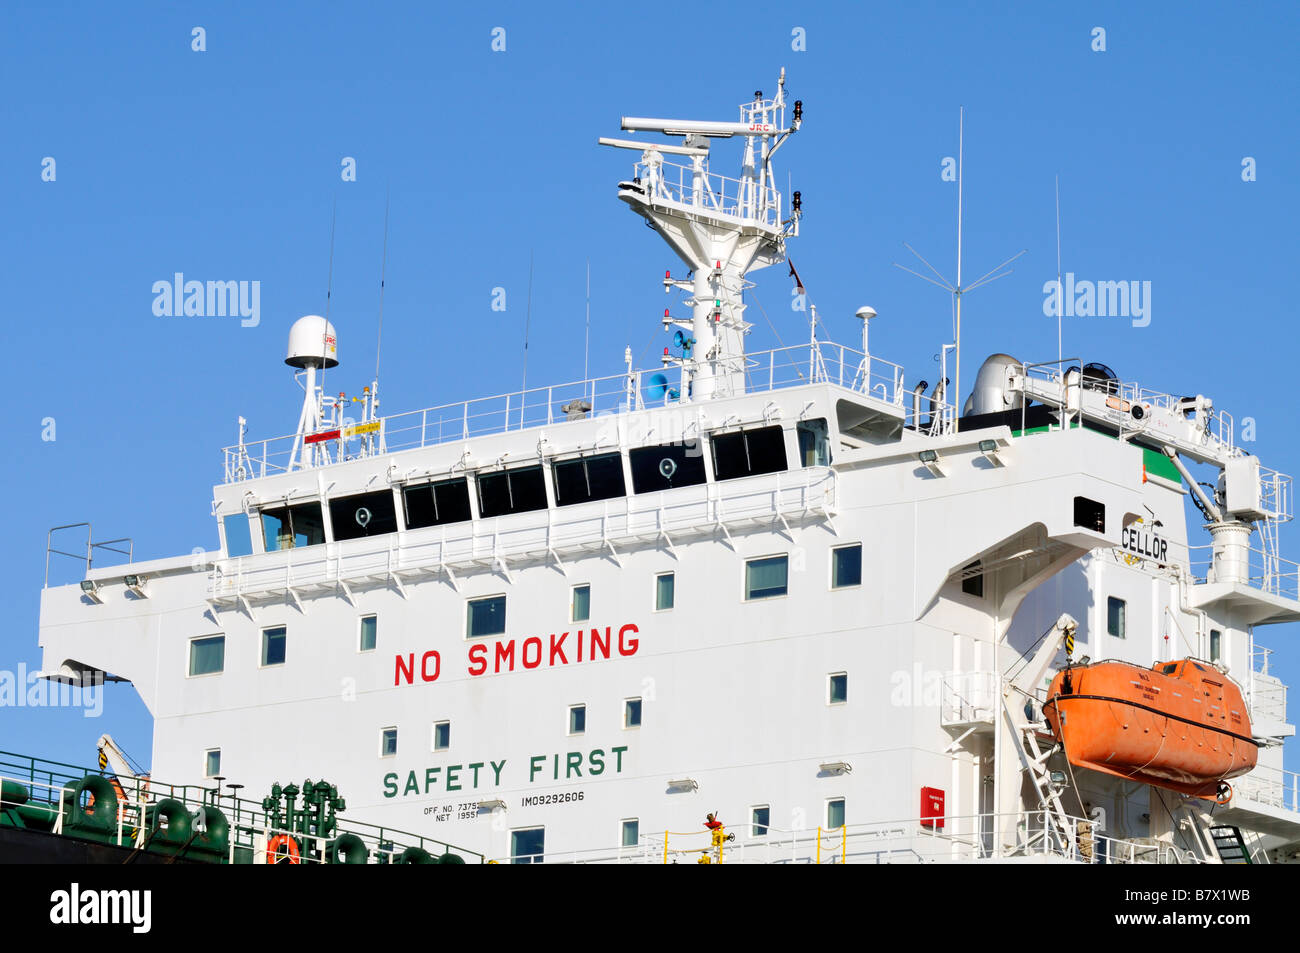 Ship's bridge or superstructure showing radar electronics lifeboat 'no smoking' and [safety first signs] - Stock Image